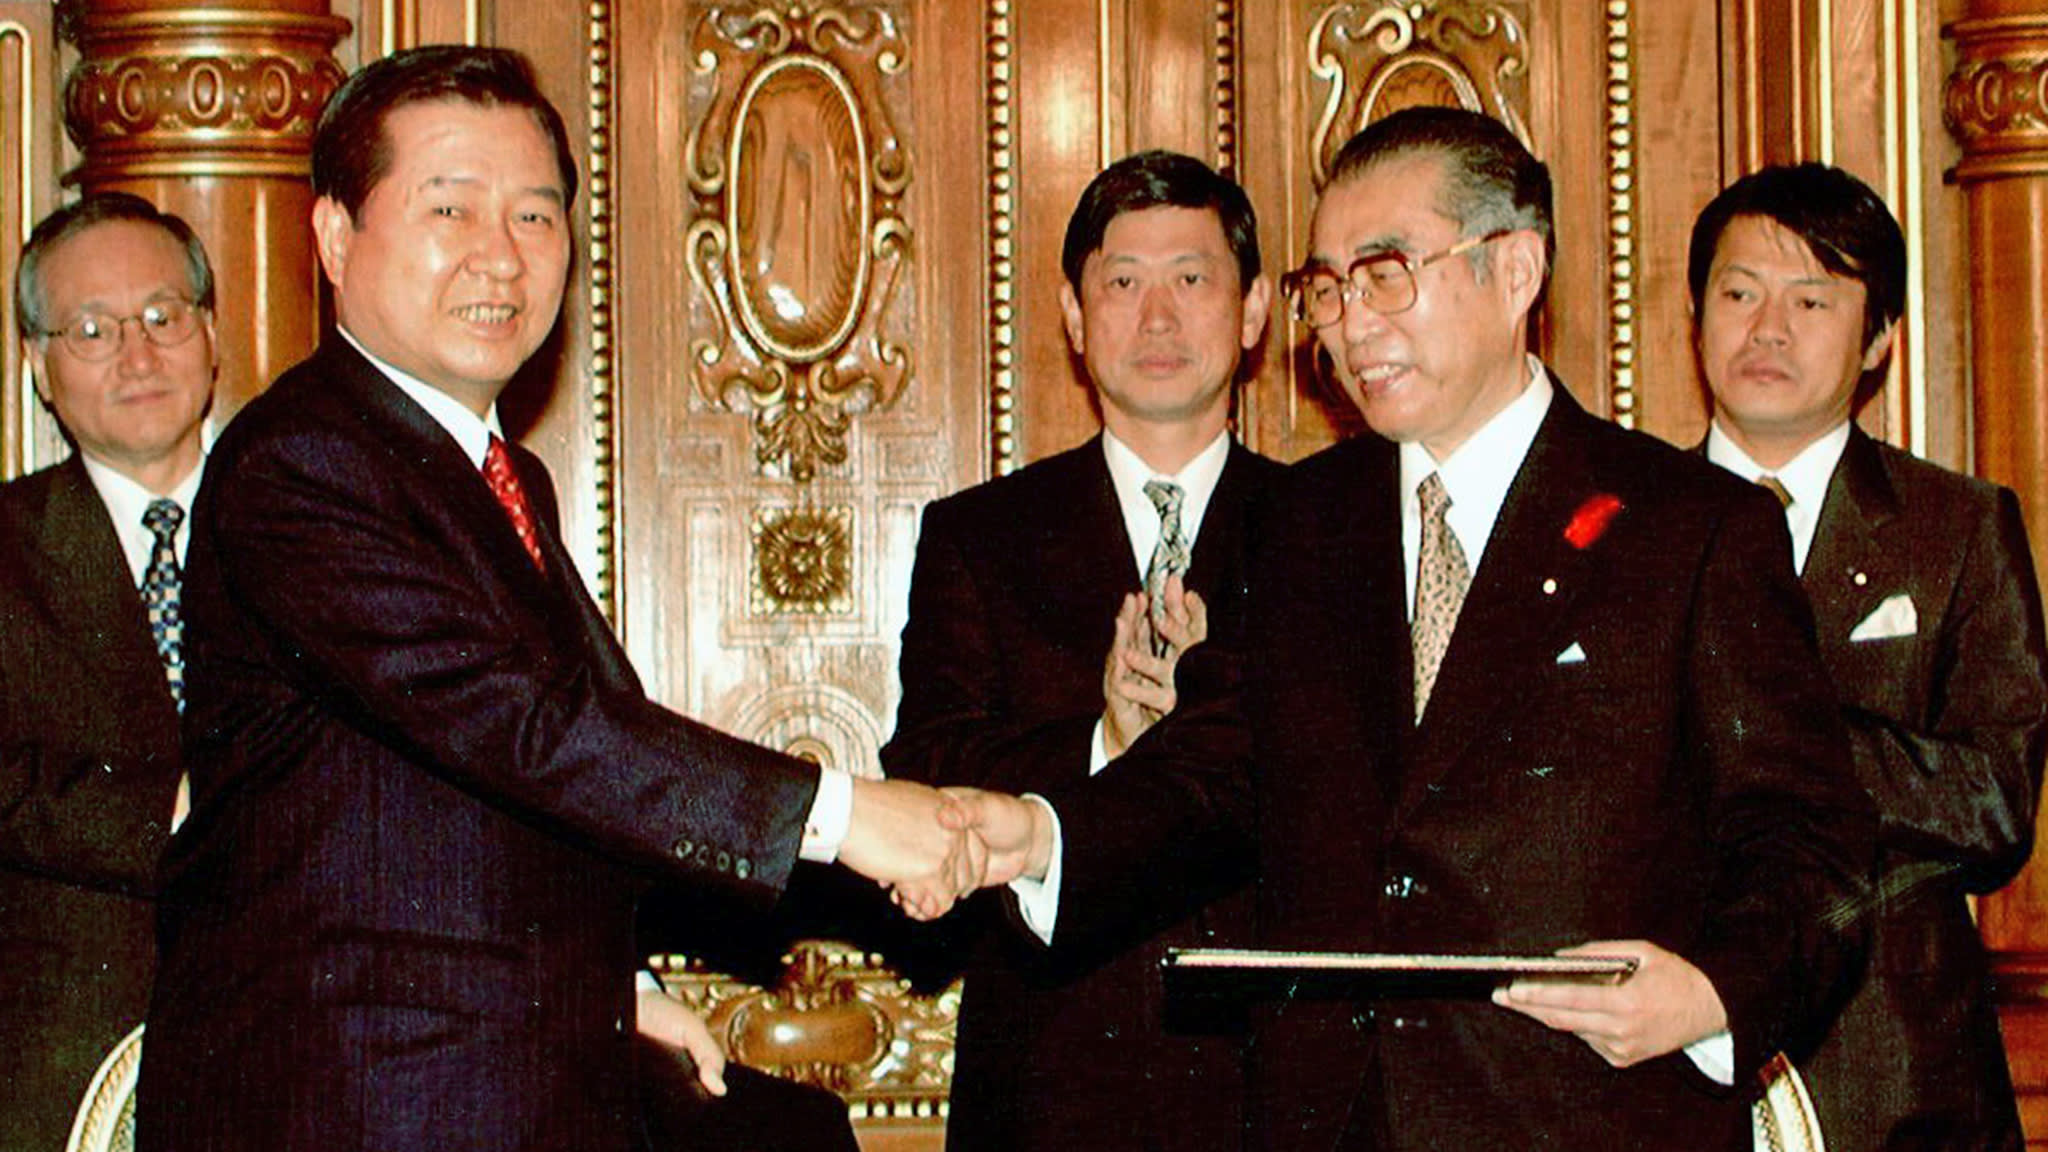 Then-Japanese Prime Minister Keizo Obuchi, right, and then-South Korean President Kim Dae-jung sign a joint declaration in Tokyo in 1998.